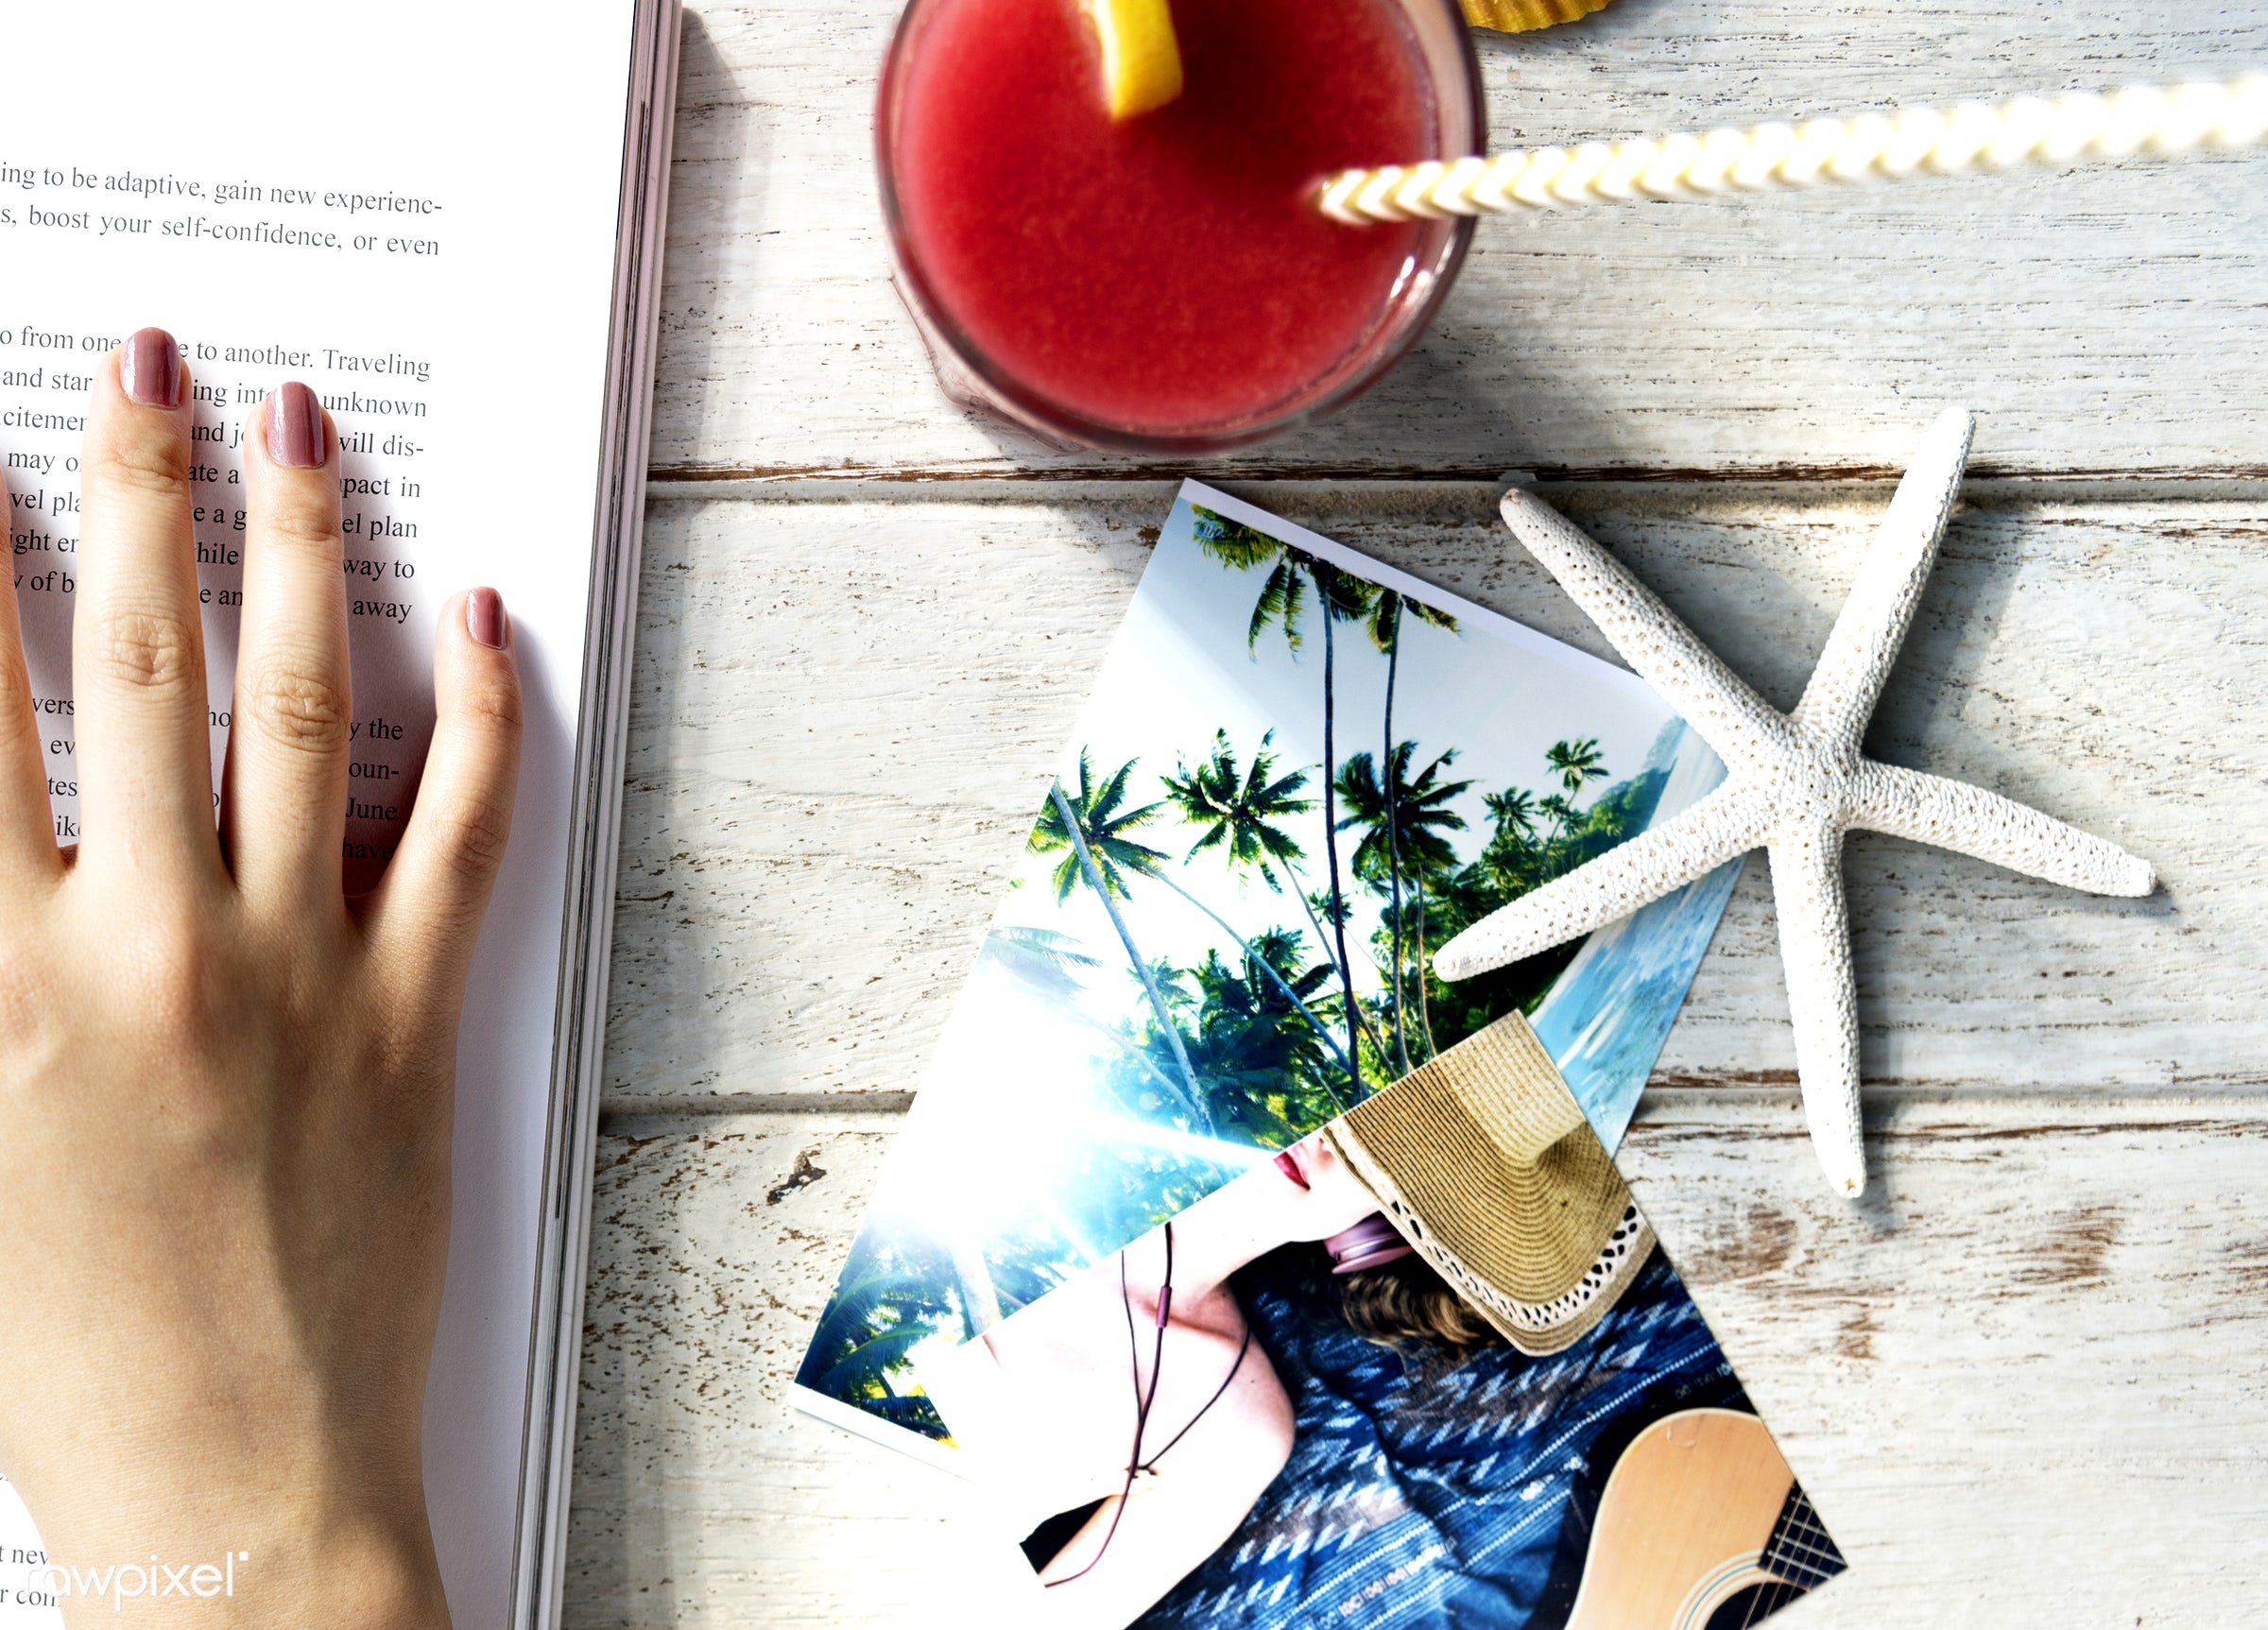 relax, aerial, alone, beach, beverage, book, break, closeup, desk, drink, fiction, hand, hobby, holiday, image, journey,...